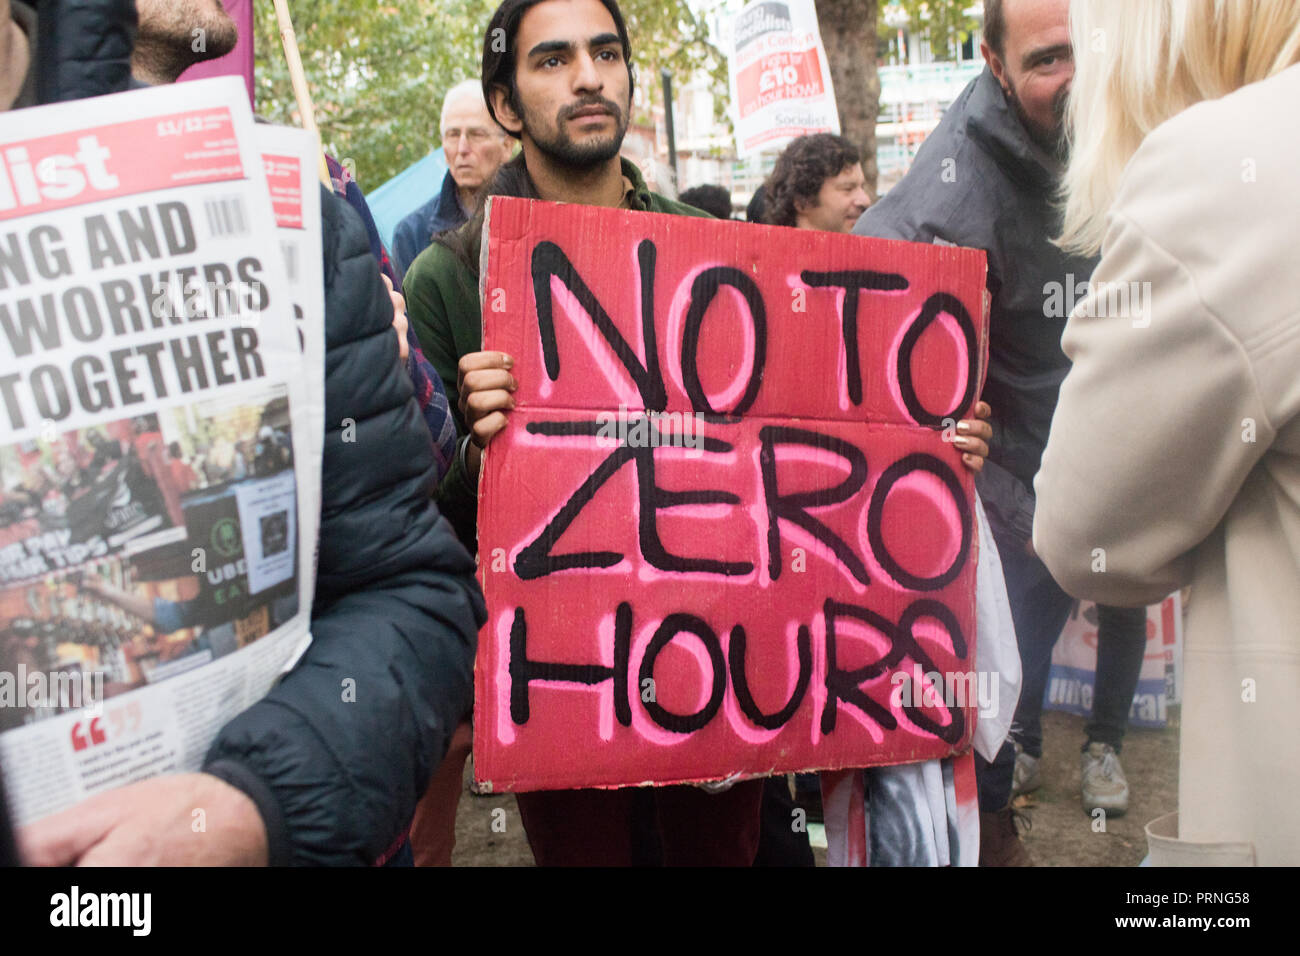 London UK 4th October 2018. Staff Workers from McDonald's, JD Wetherspoon and TGI Fridays and UberEats riders organized by Unite Union  took part in a strike in Leicester Square  to  campaign for higher wages and to be paid  £10 an hour and an end to Zero Hour contracts Credit: amer ghazzal/Alamy Live News Stock Photo